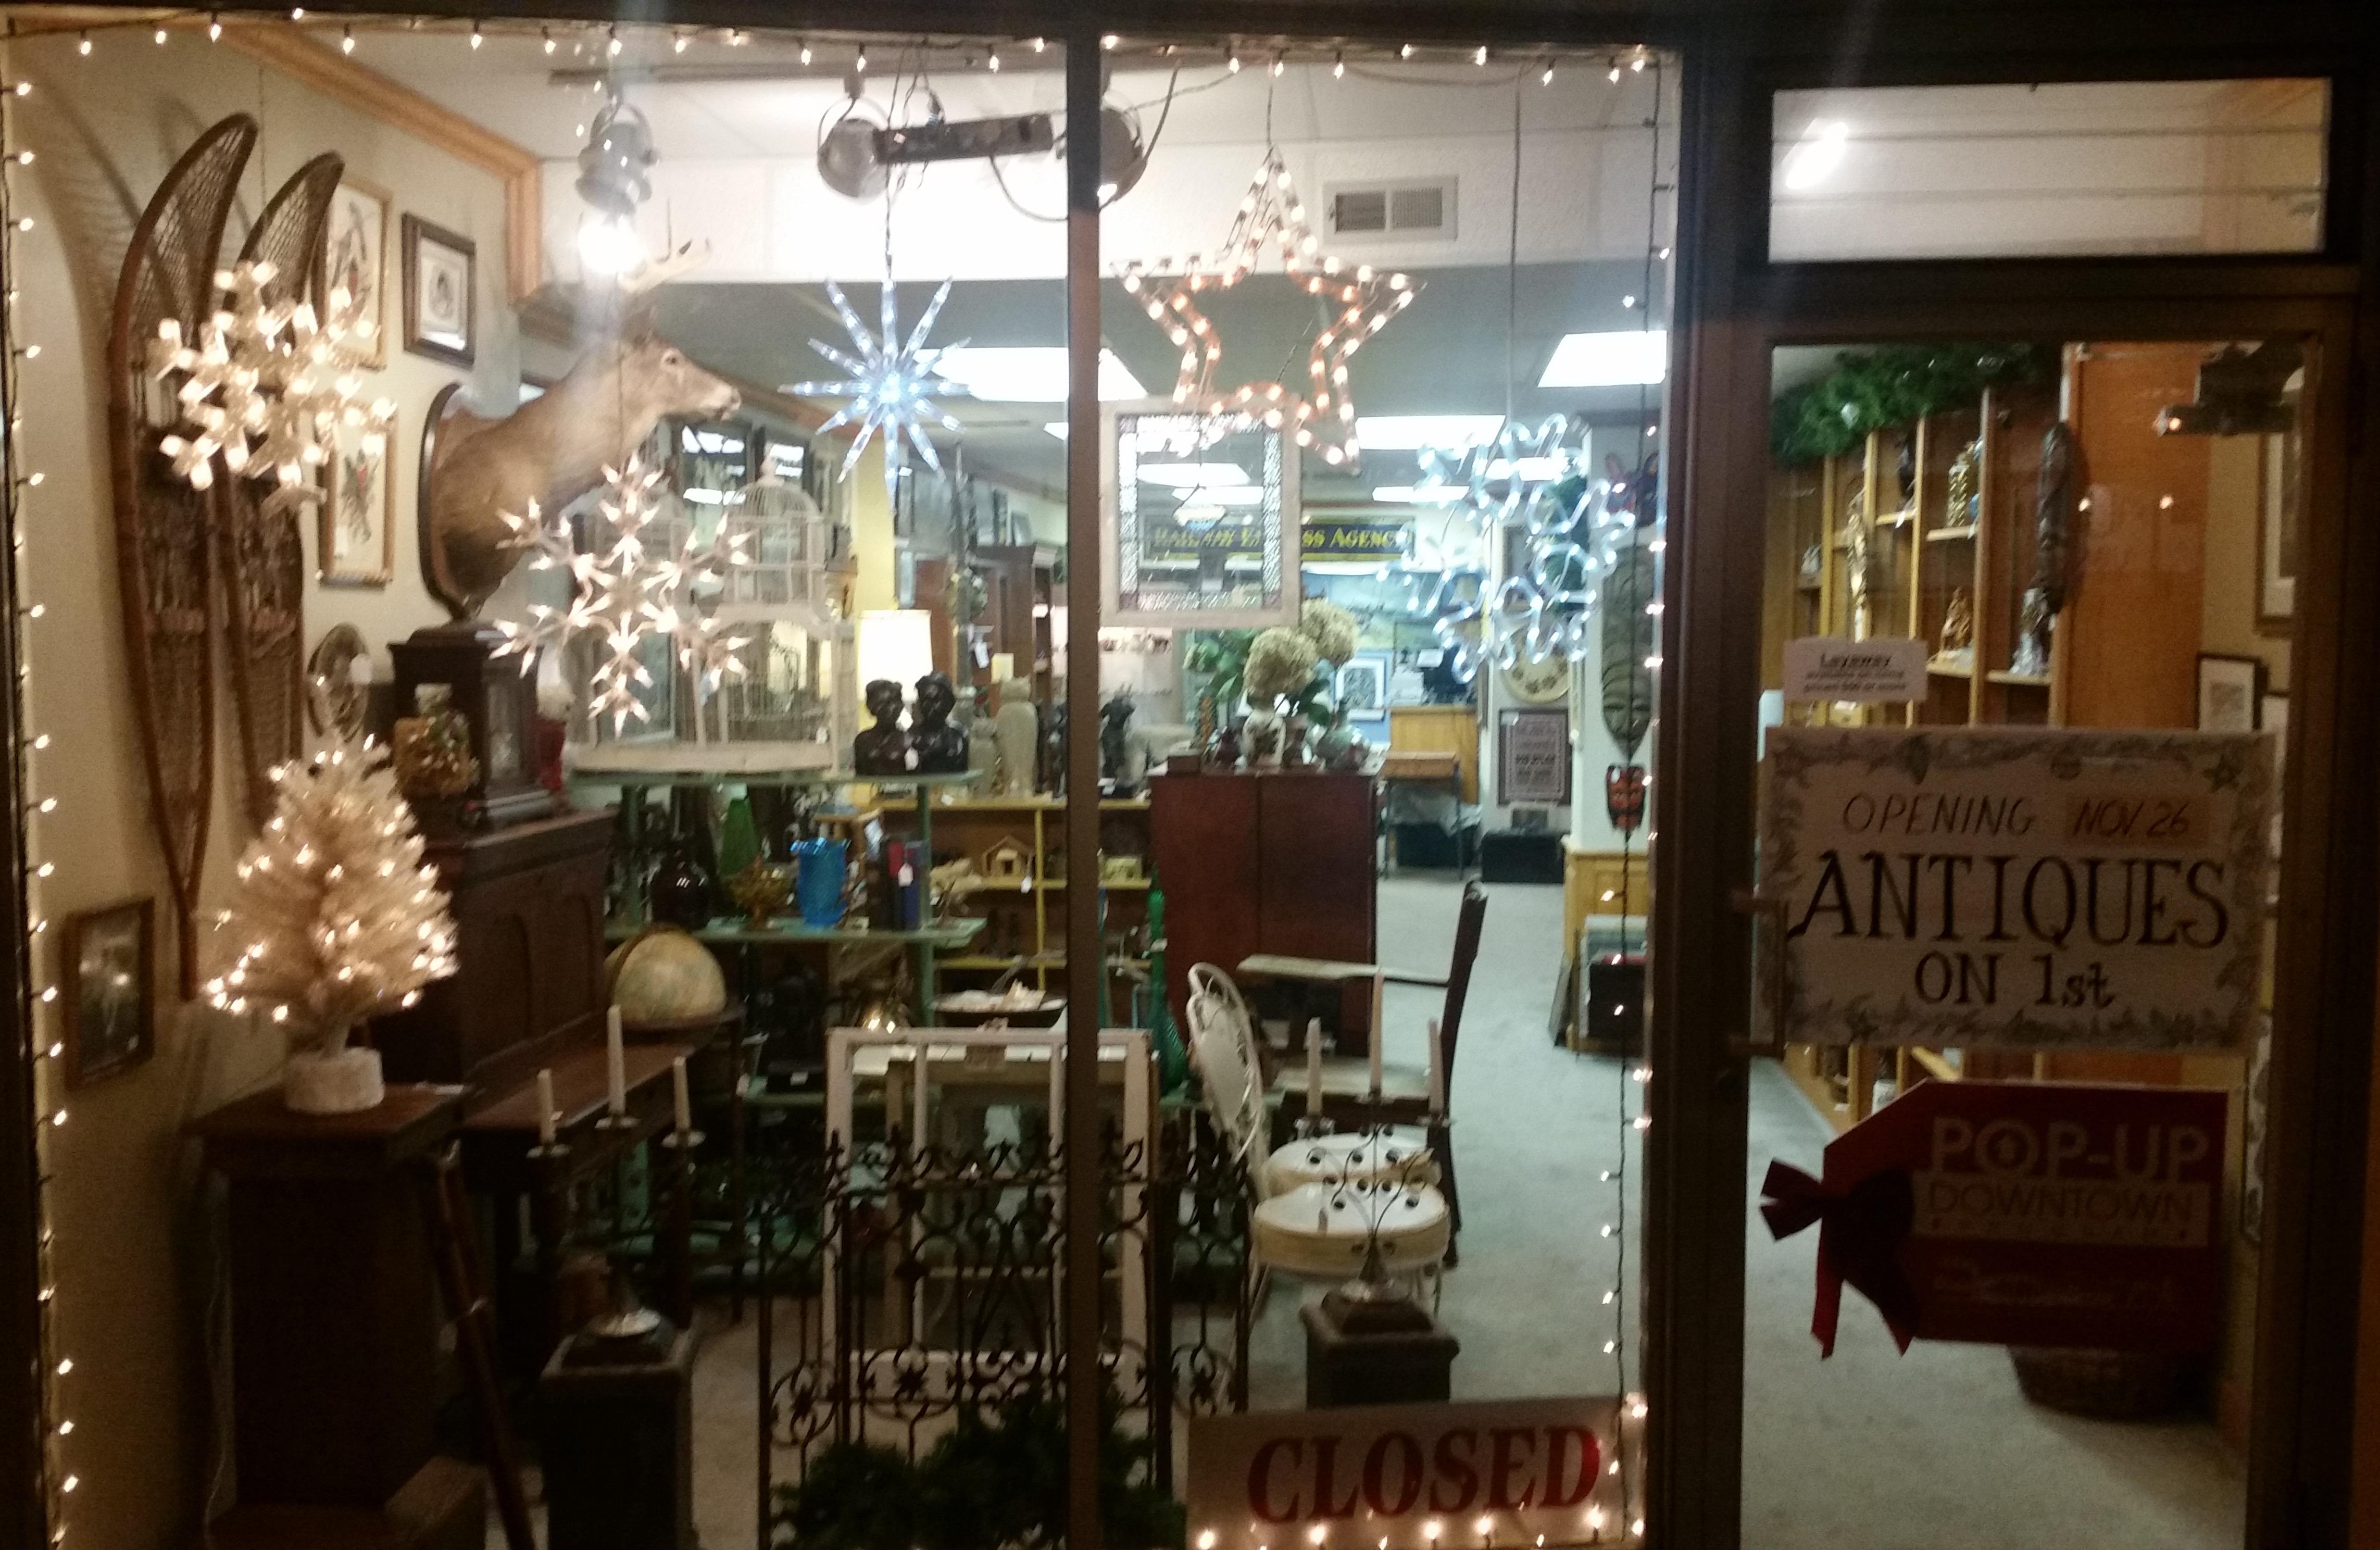 Antiques on 1st - Duluth, MN 55806 - (218)221-4889 | ShowMeLocal.com